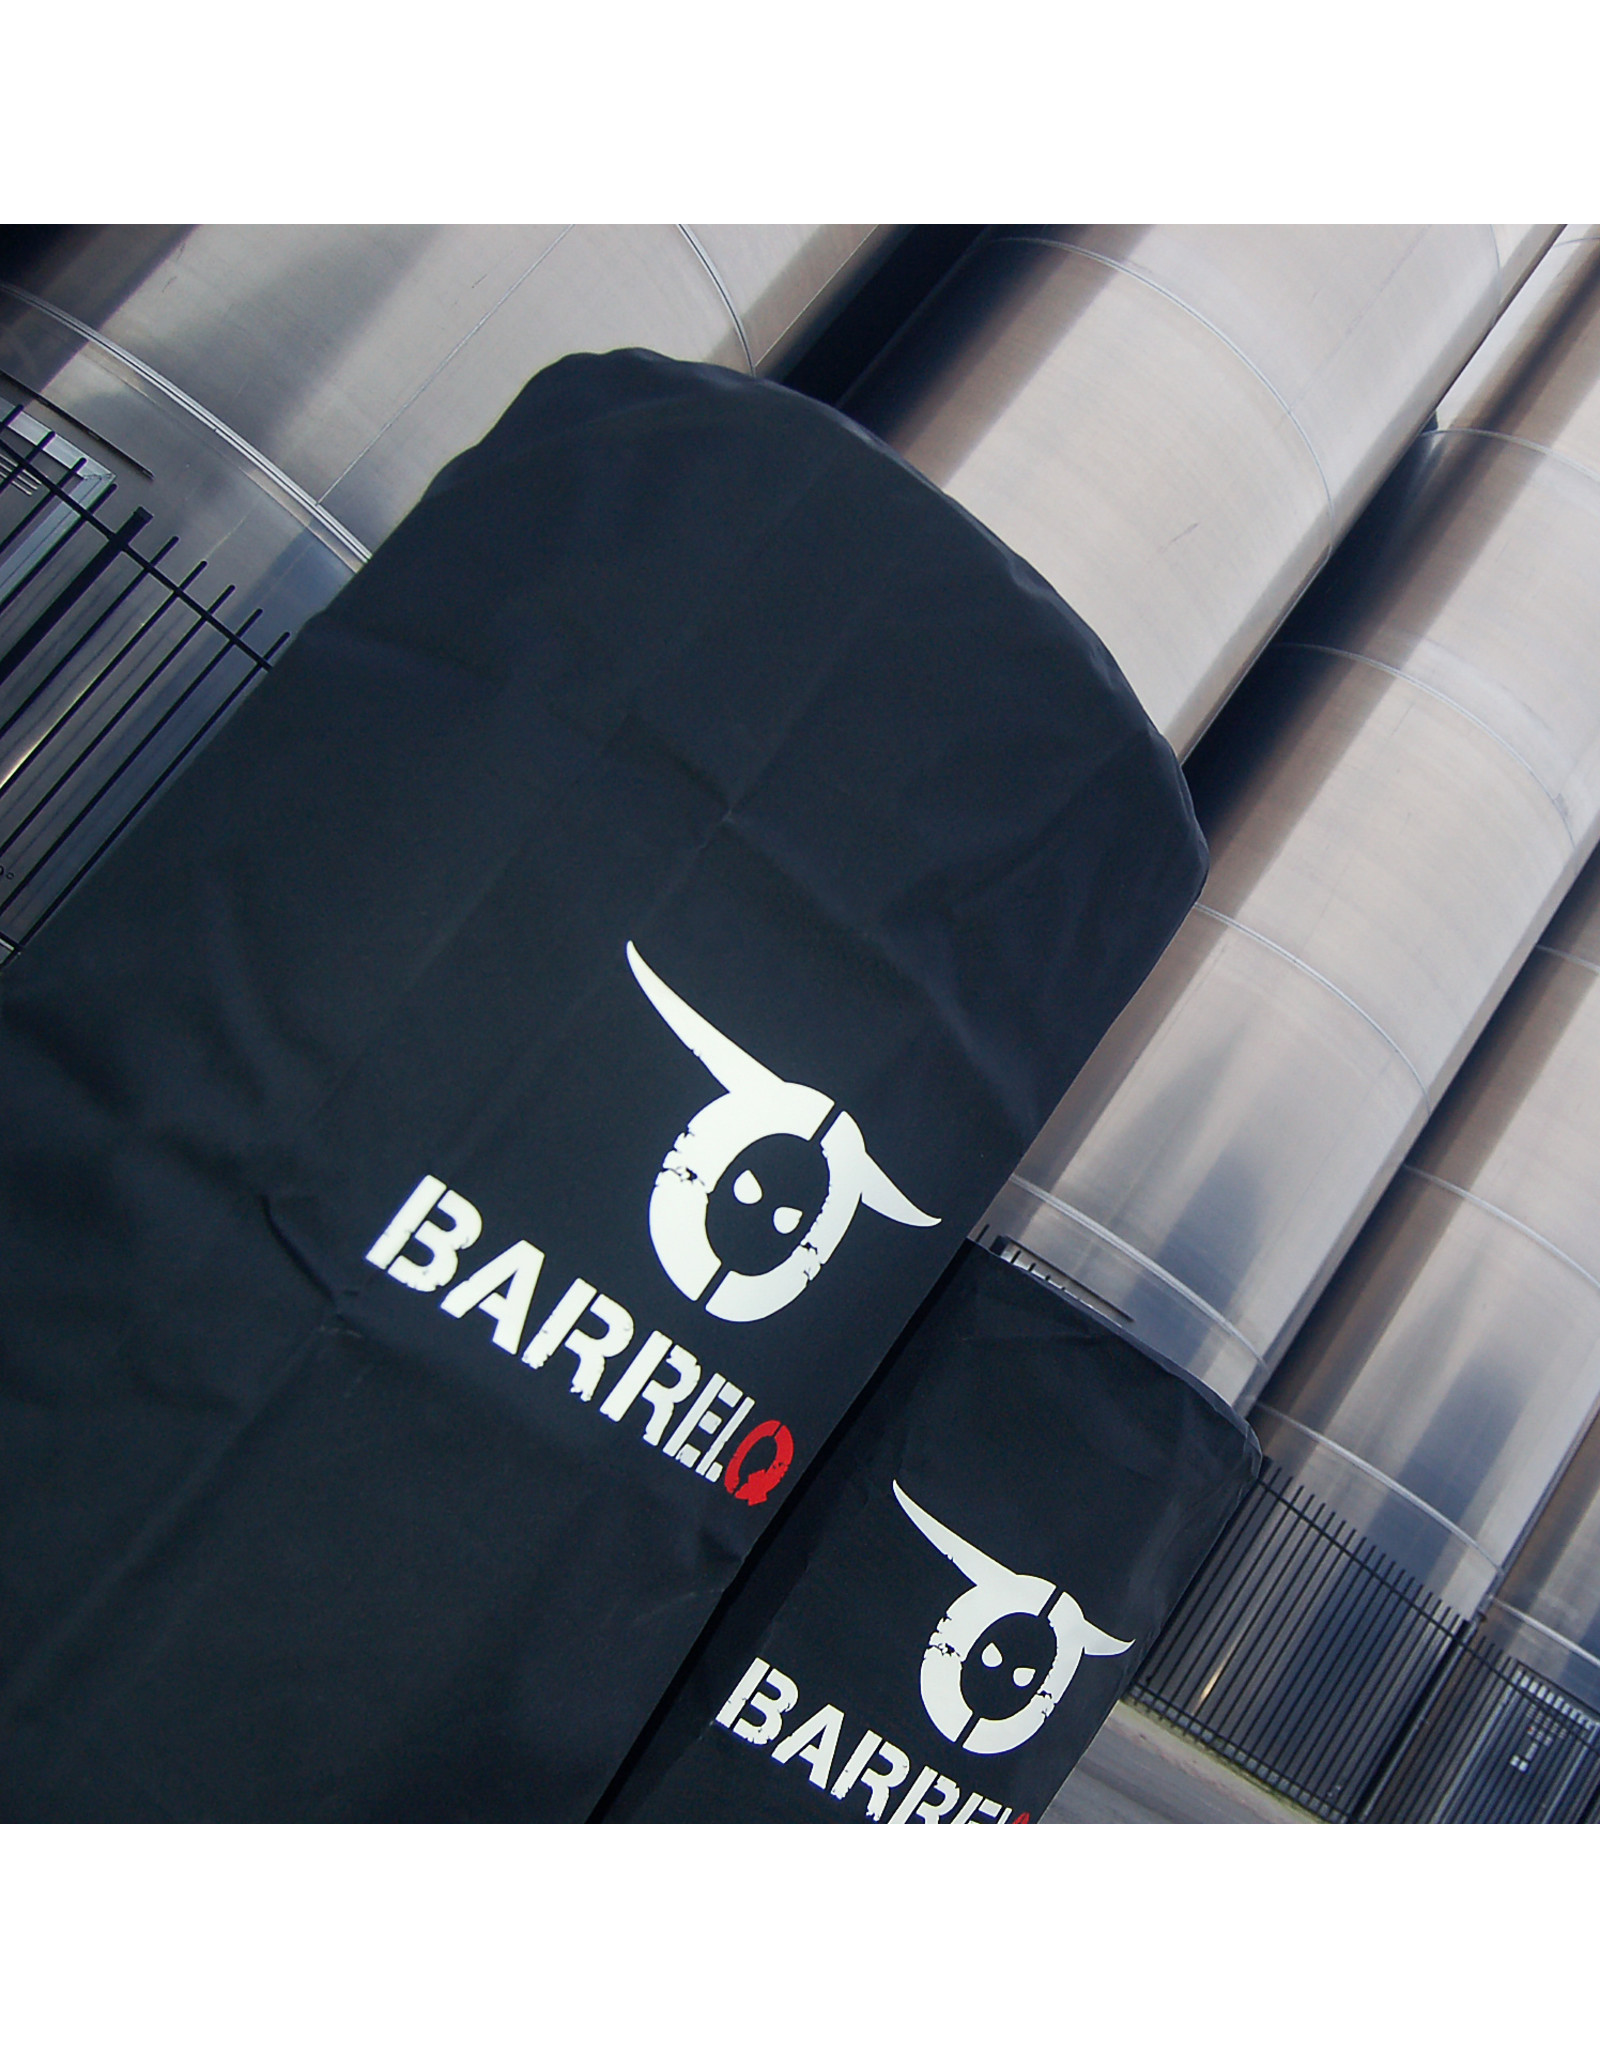 BarrelQ BarrelQ Big Barbecue, firepit and table in one + cover